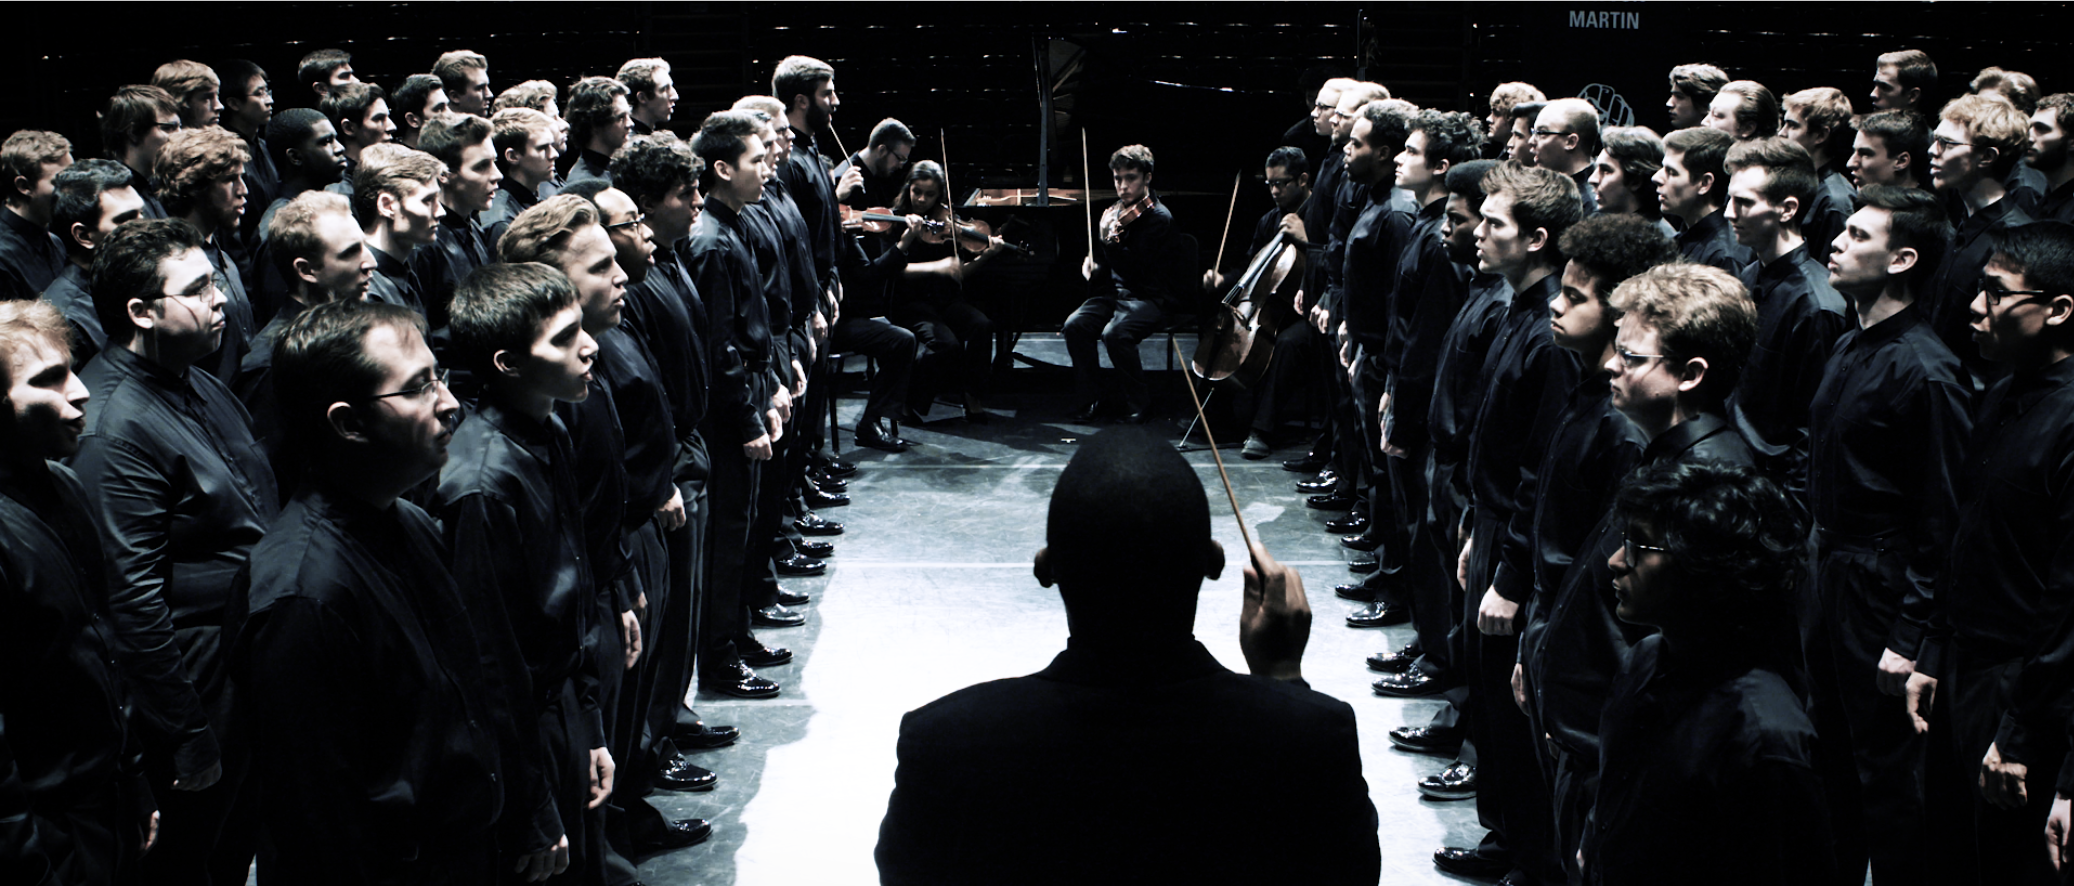 Video Still of Seven Words of the Unarmed performance by U-M Men's Glee Club. Image credit: Chris McElroy, Michigan Media